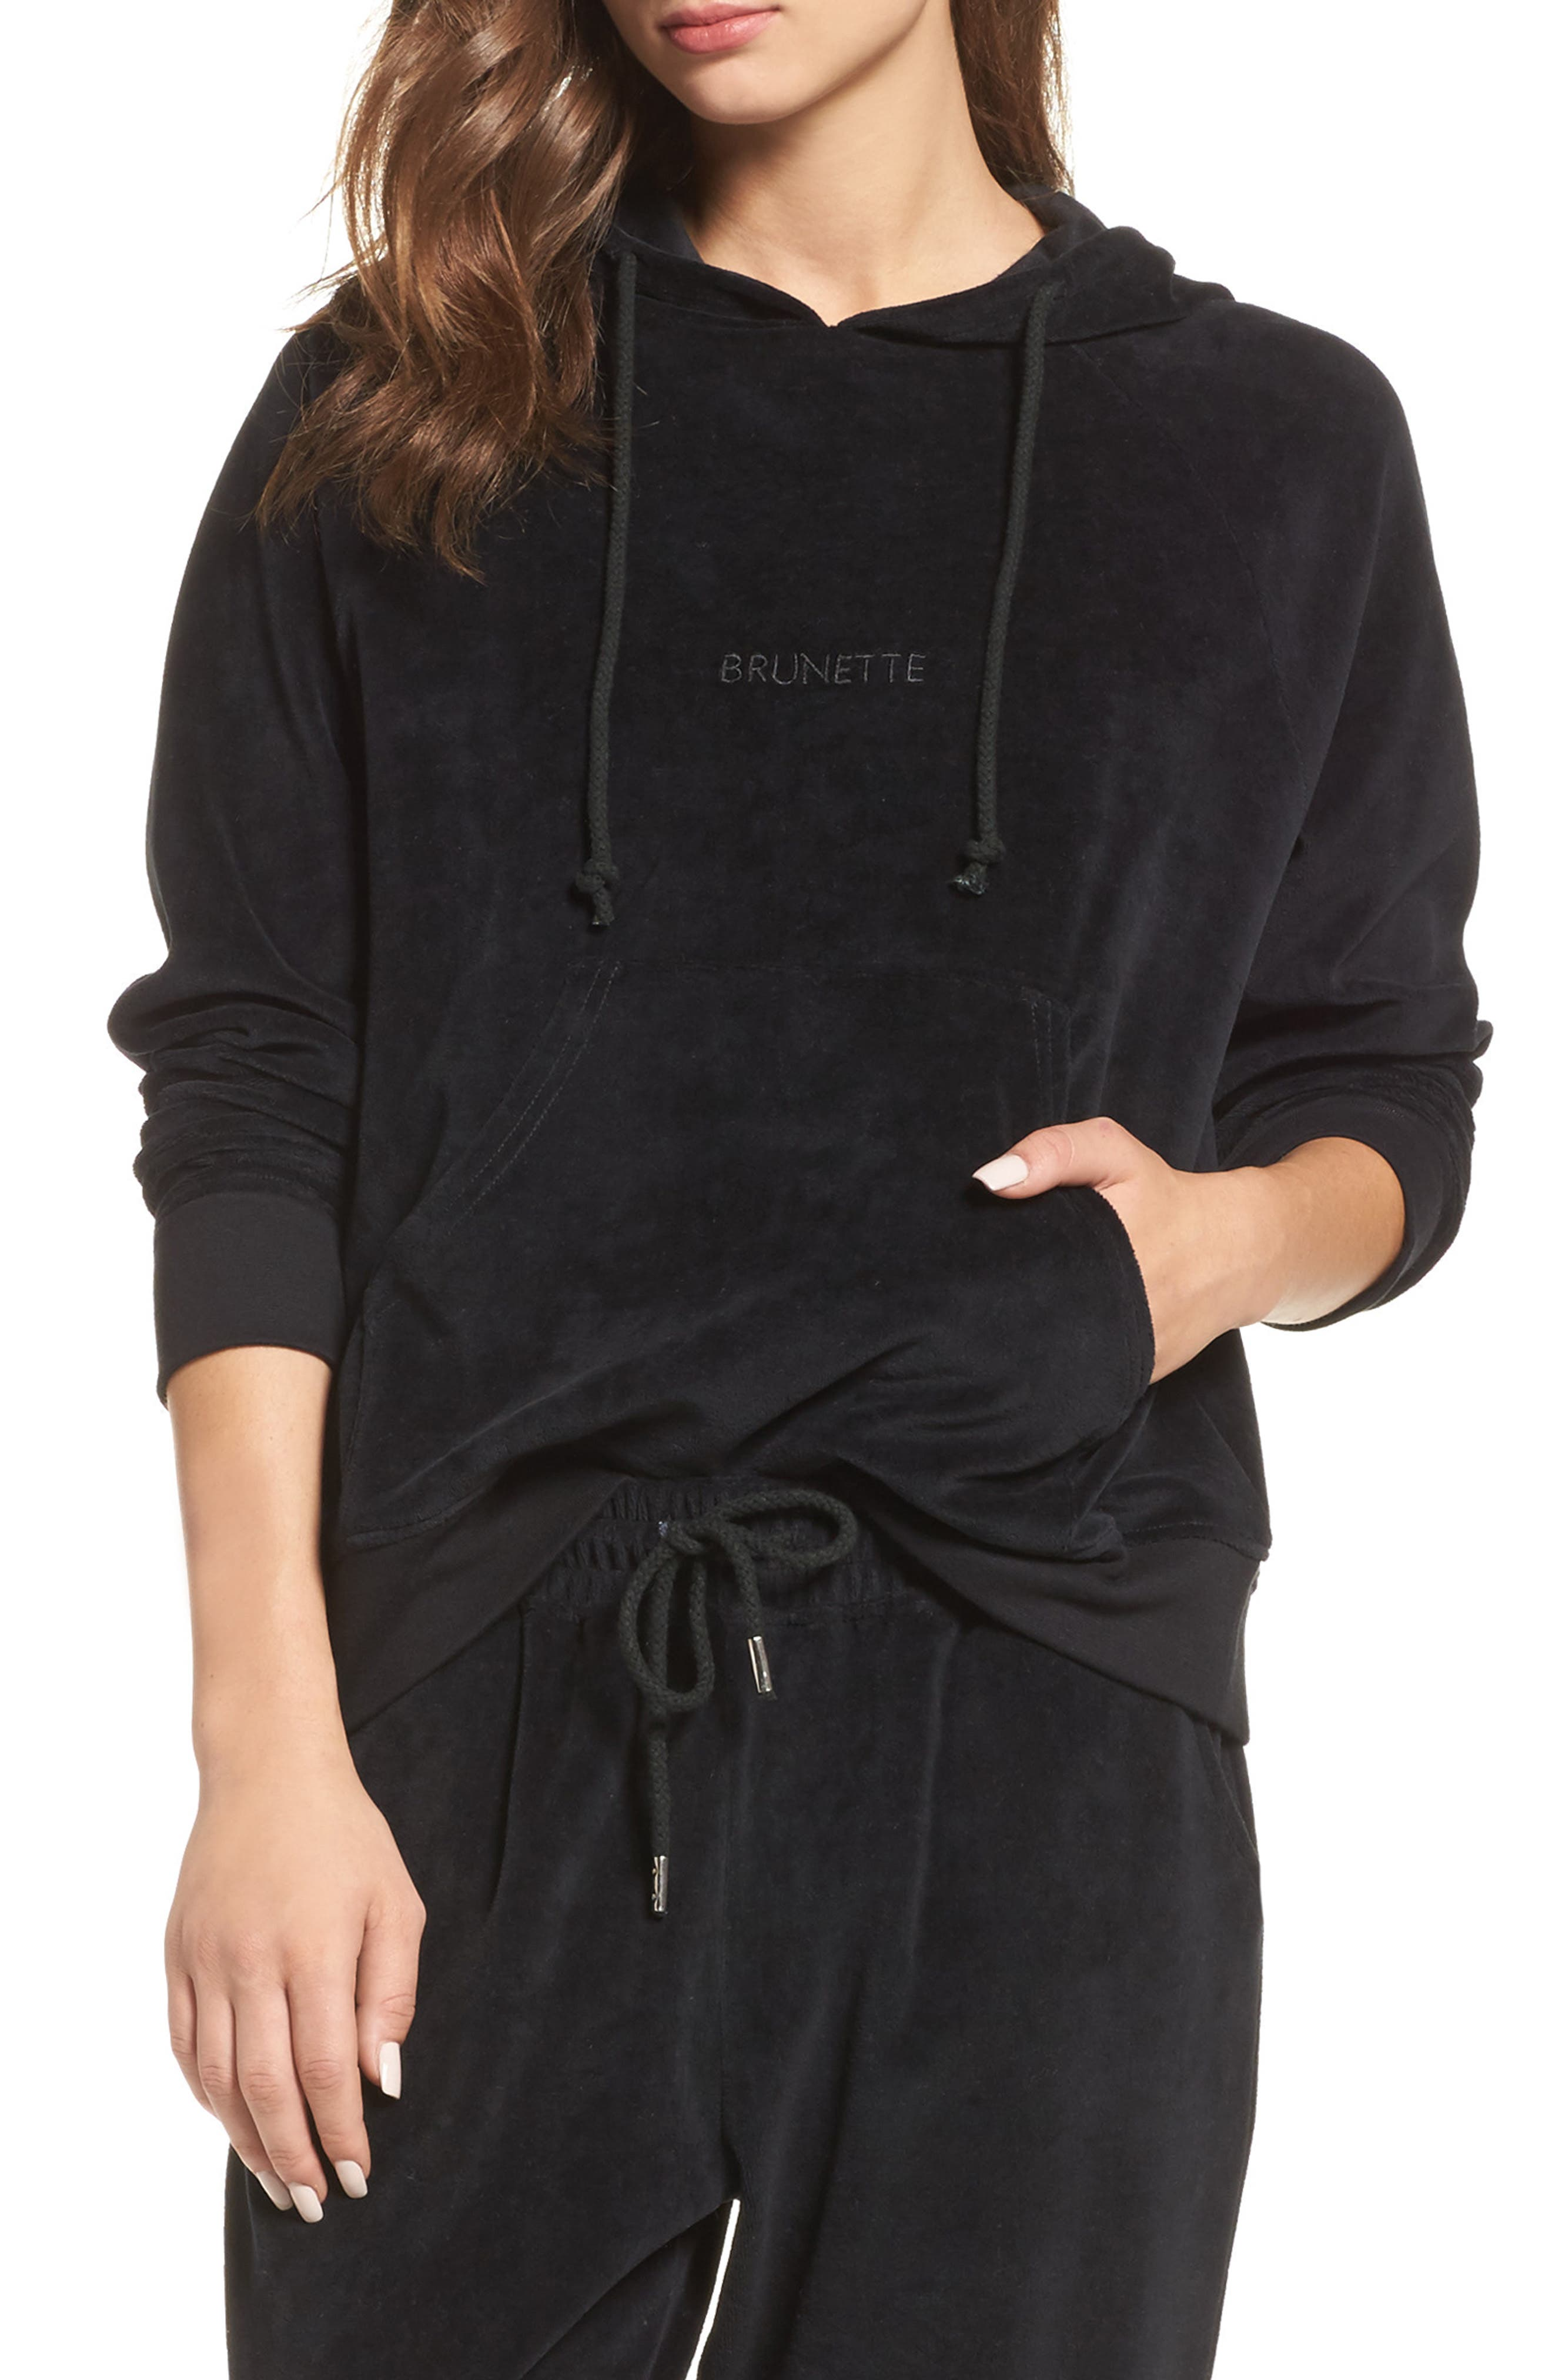 Brunette Embroidered Velour Hoodie,                         Main,                         color,